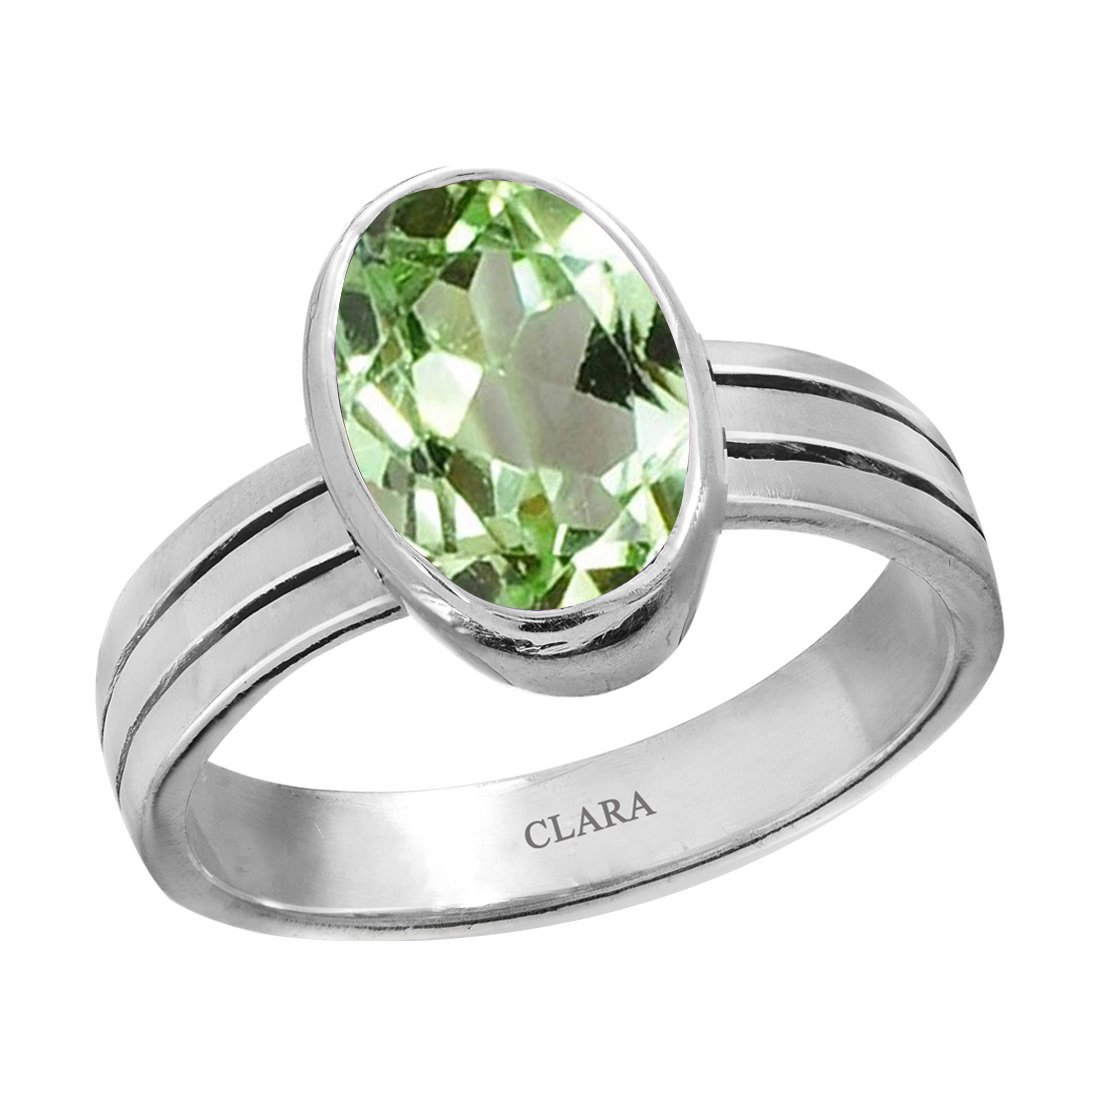 Clara Certified Peridot 8.3cts or 9.25ratti original stone Stunning Sterling Silver Astrological Ring for Men and Women by Clara